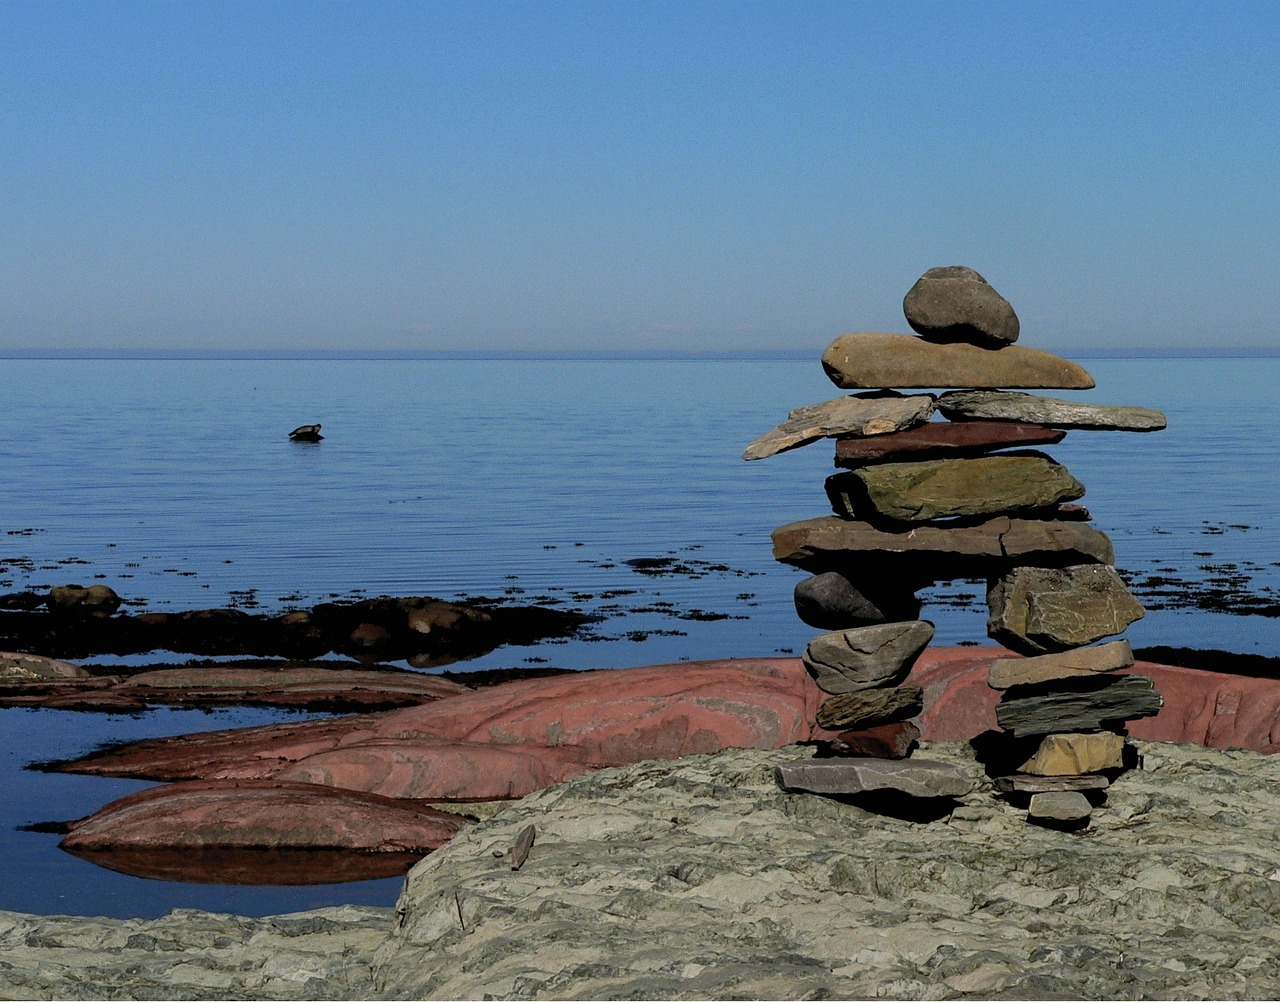 Inukshuk Stones Roche by imaginarr on Needpix (Public Domain)